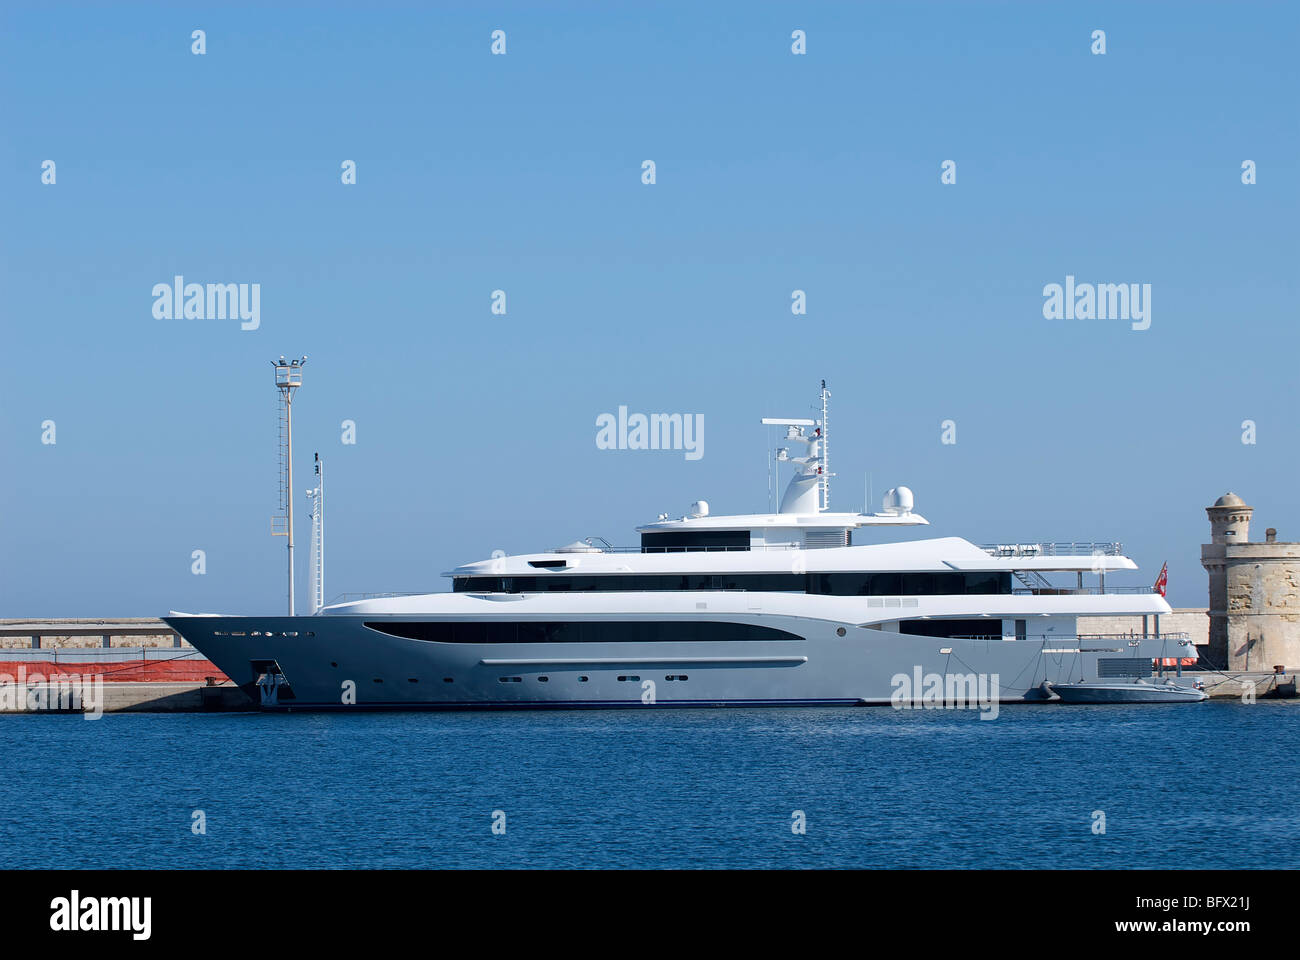 Luxury Yacht Anchored in port - Stock Image